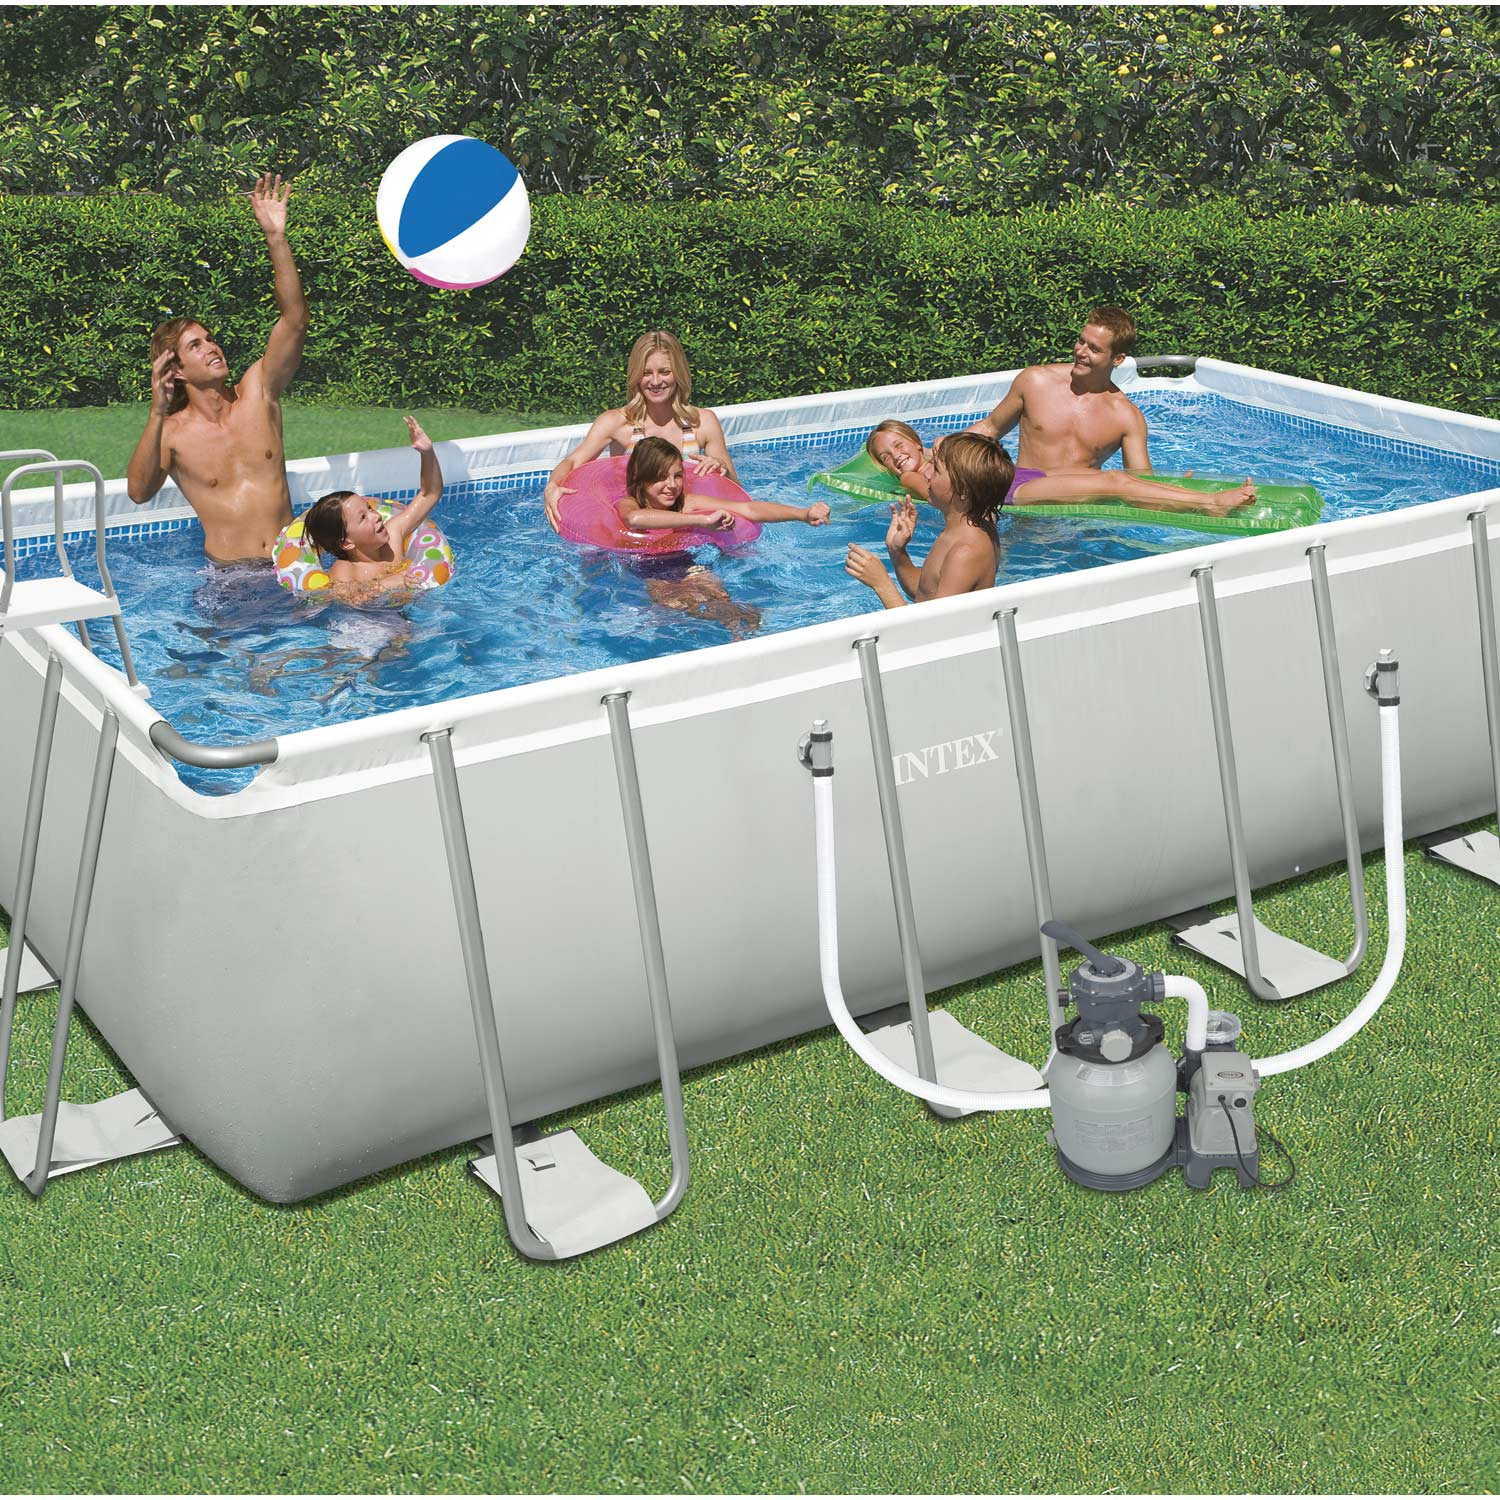 Piscine hors sol autoportante tubulaire ultra silver intex for Piscine 3 boudins intex